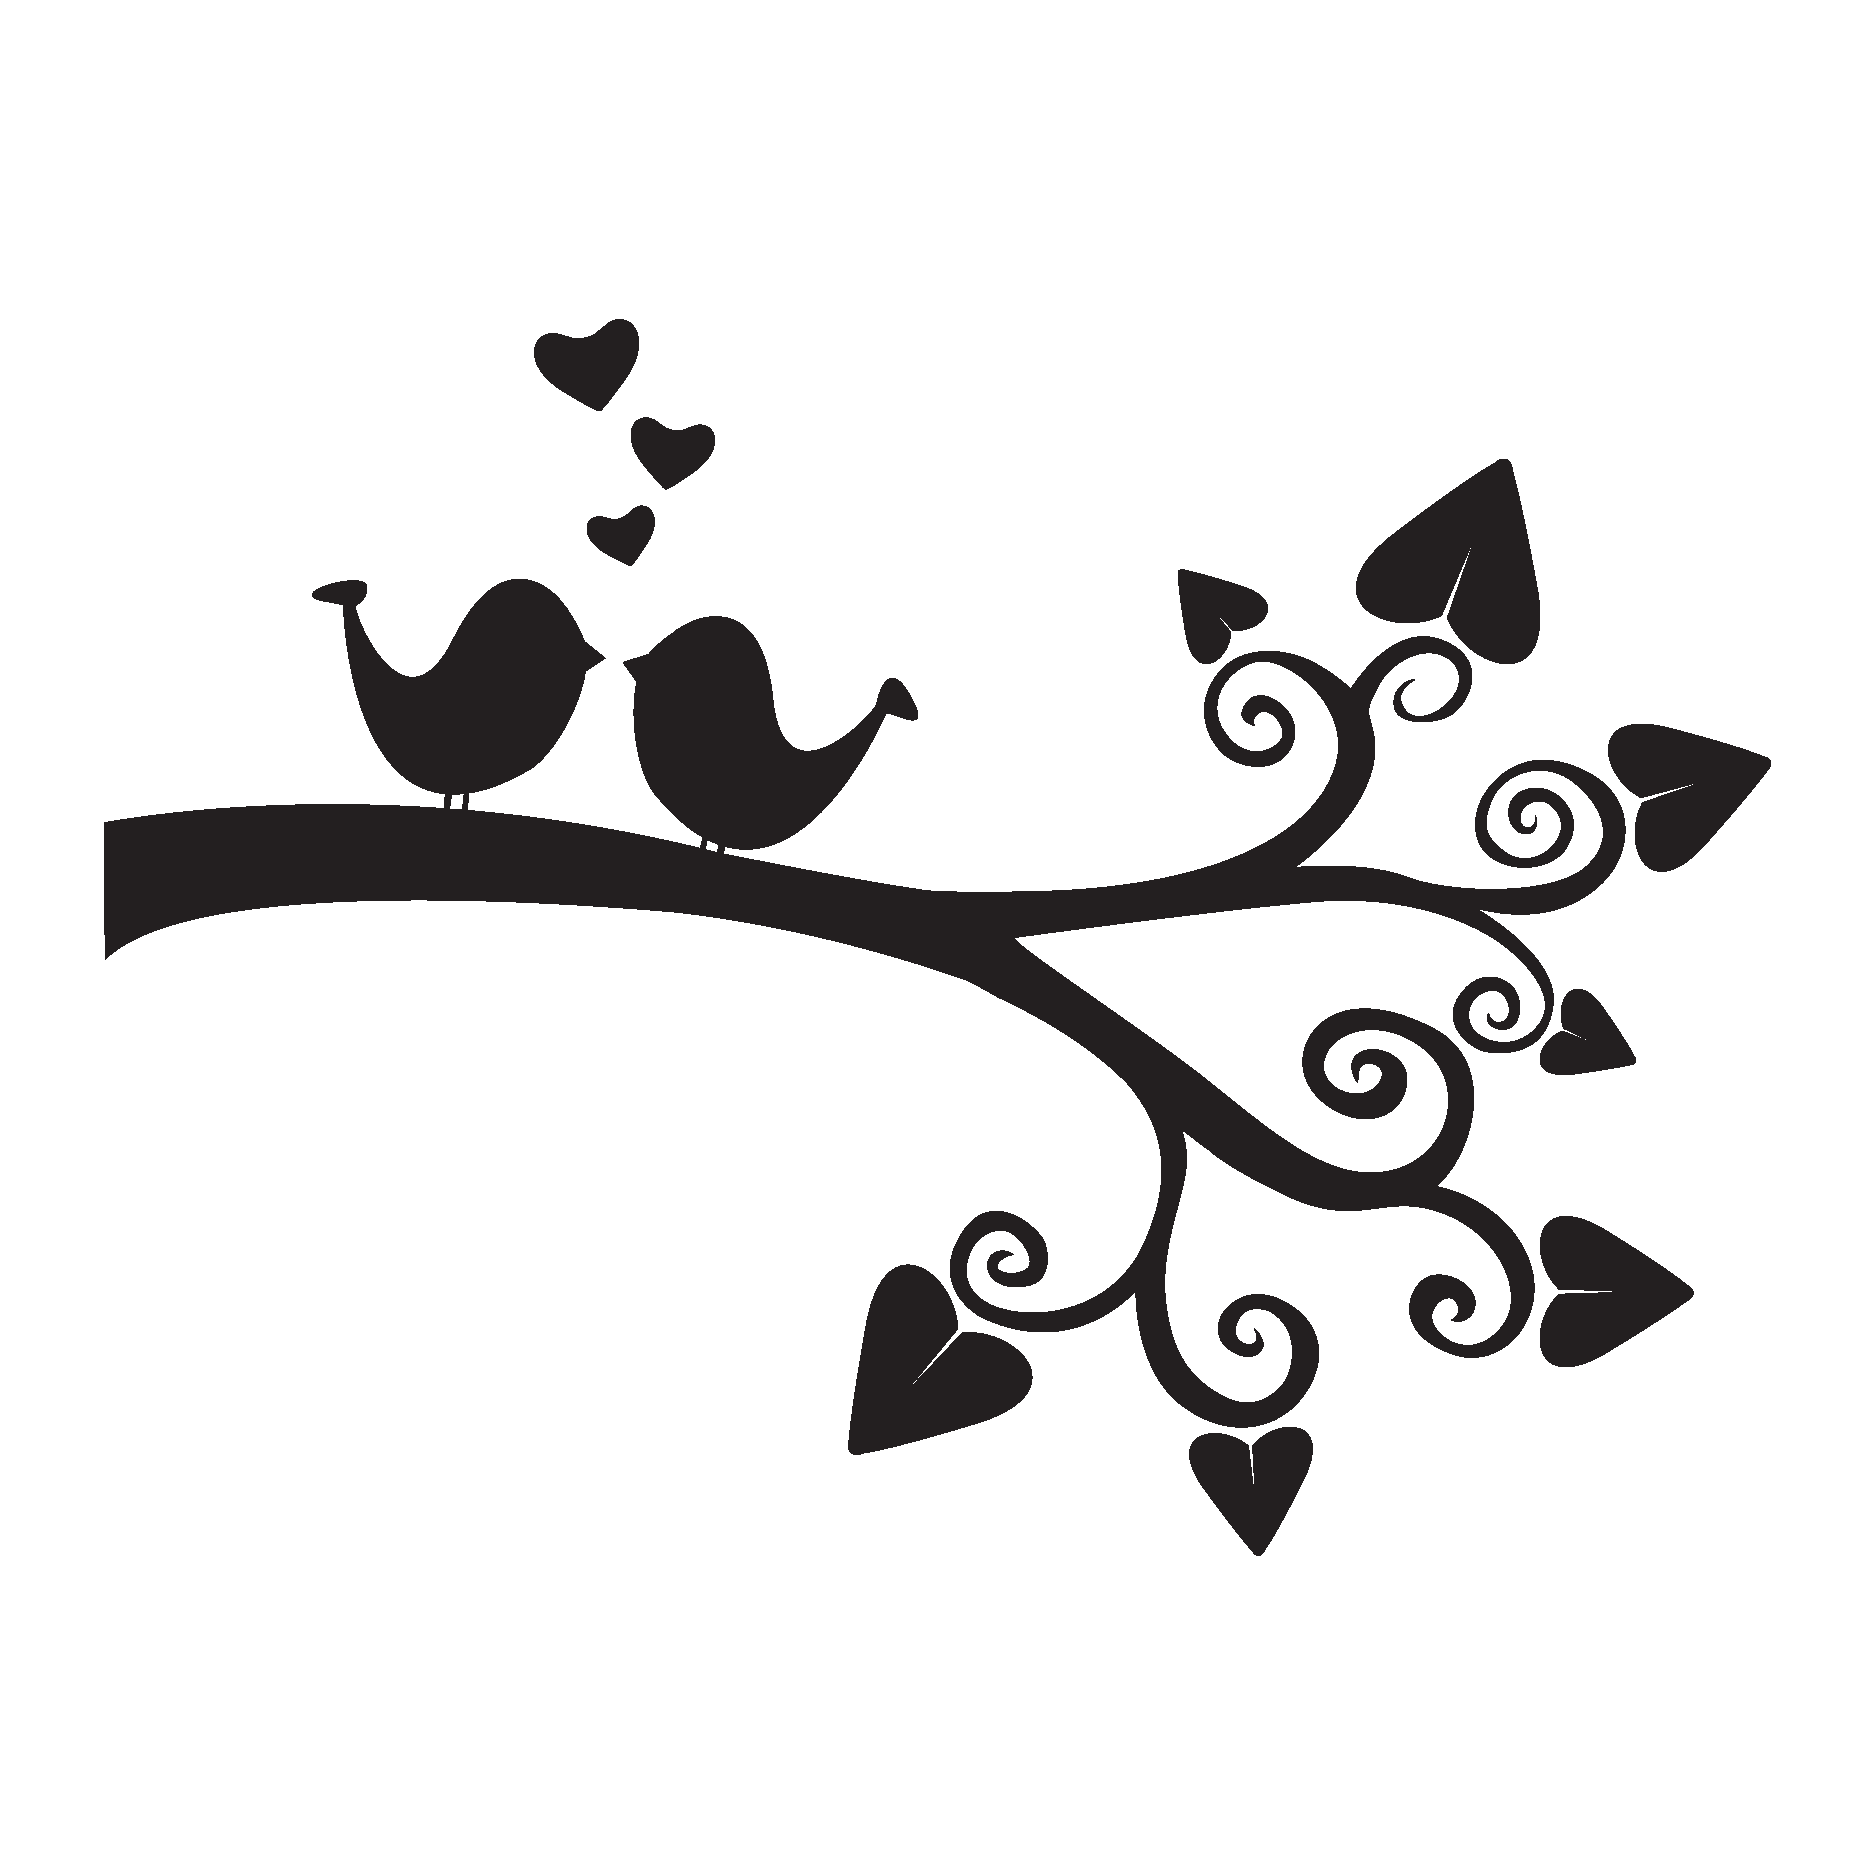 Love Birds Wall Quotes Decal